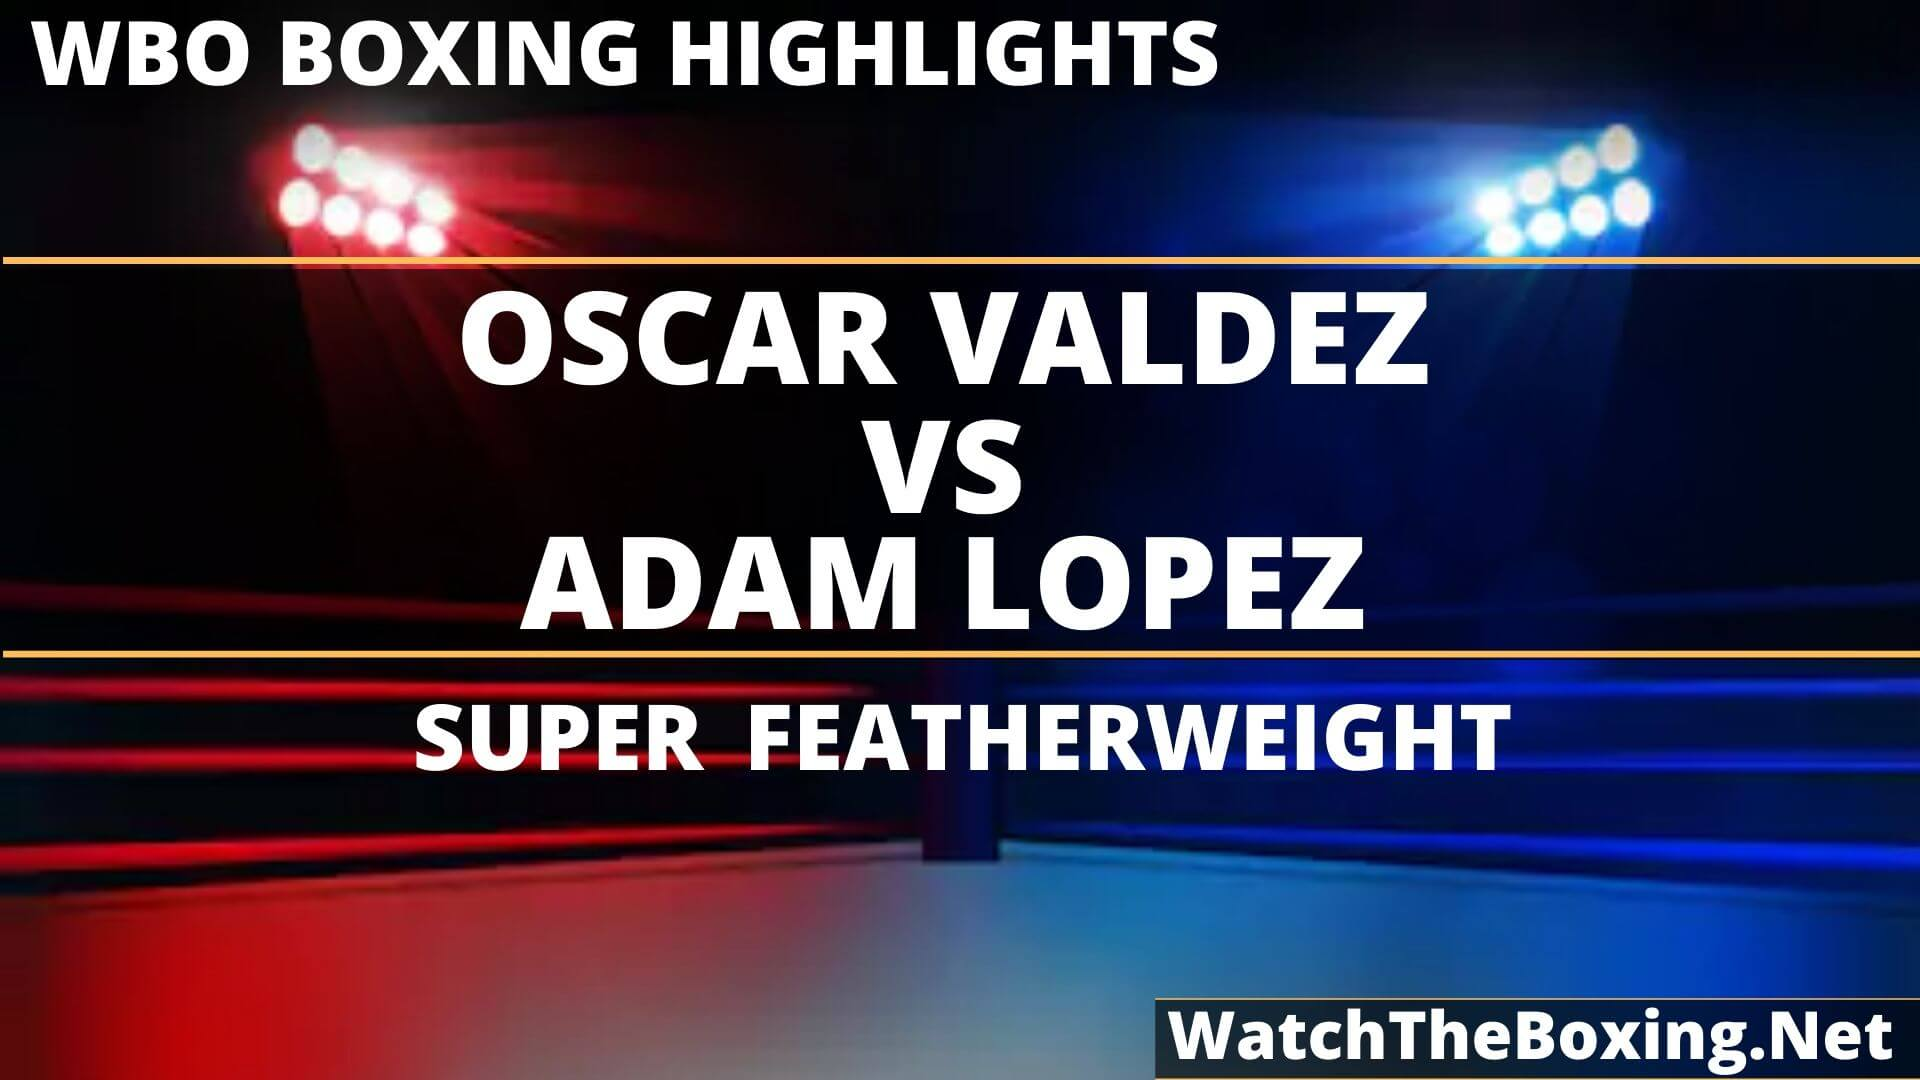 Oscar Valdez Vs Adam Lopez Highlights 2019